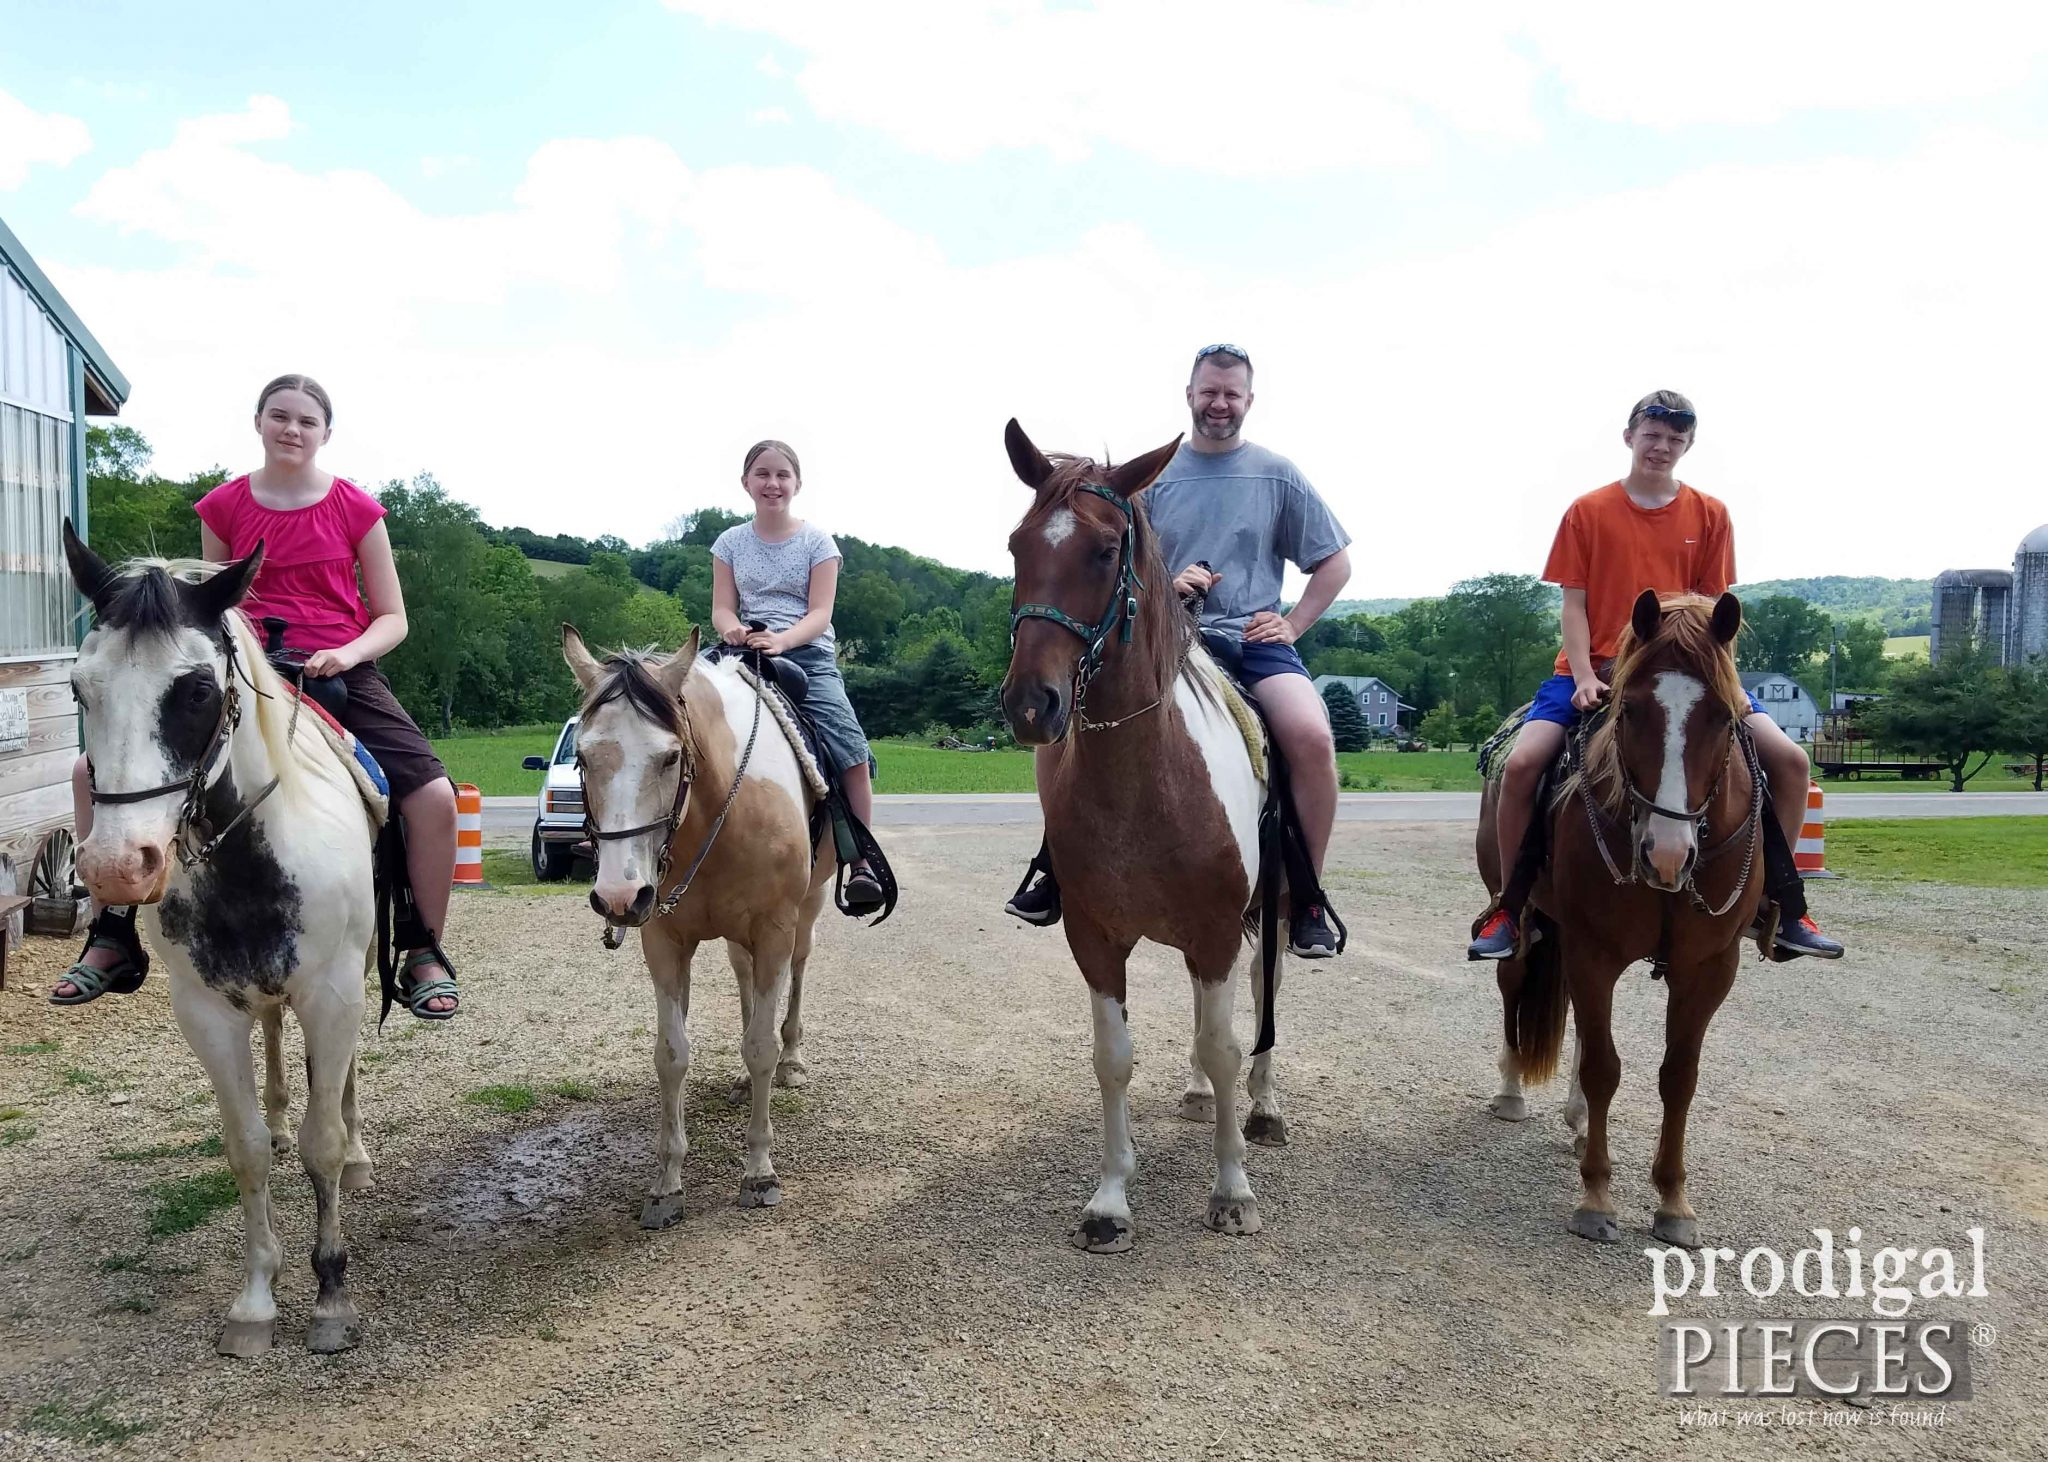 Horseback Riding with Family | prodigalpieces.com